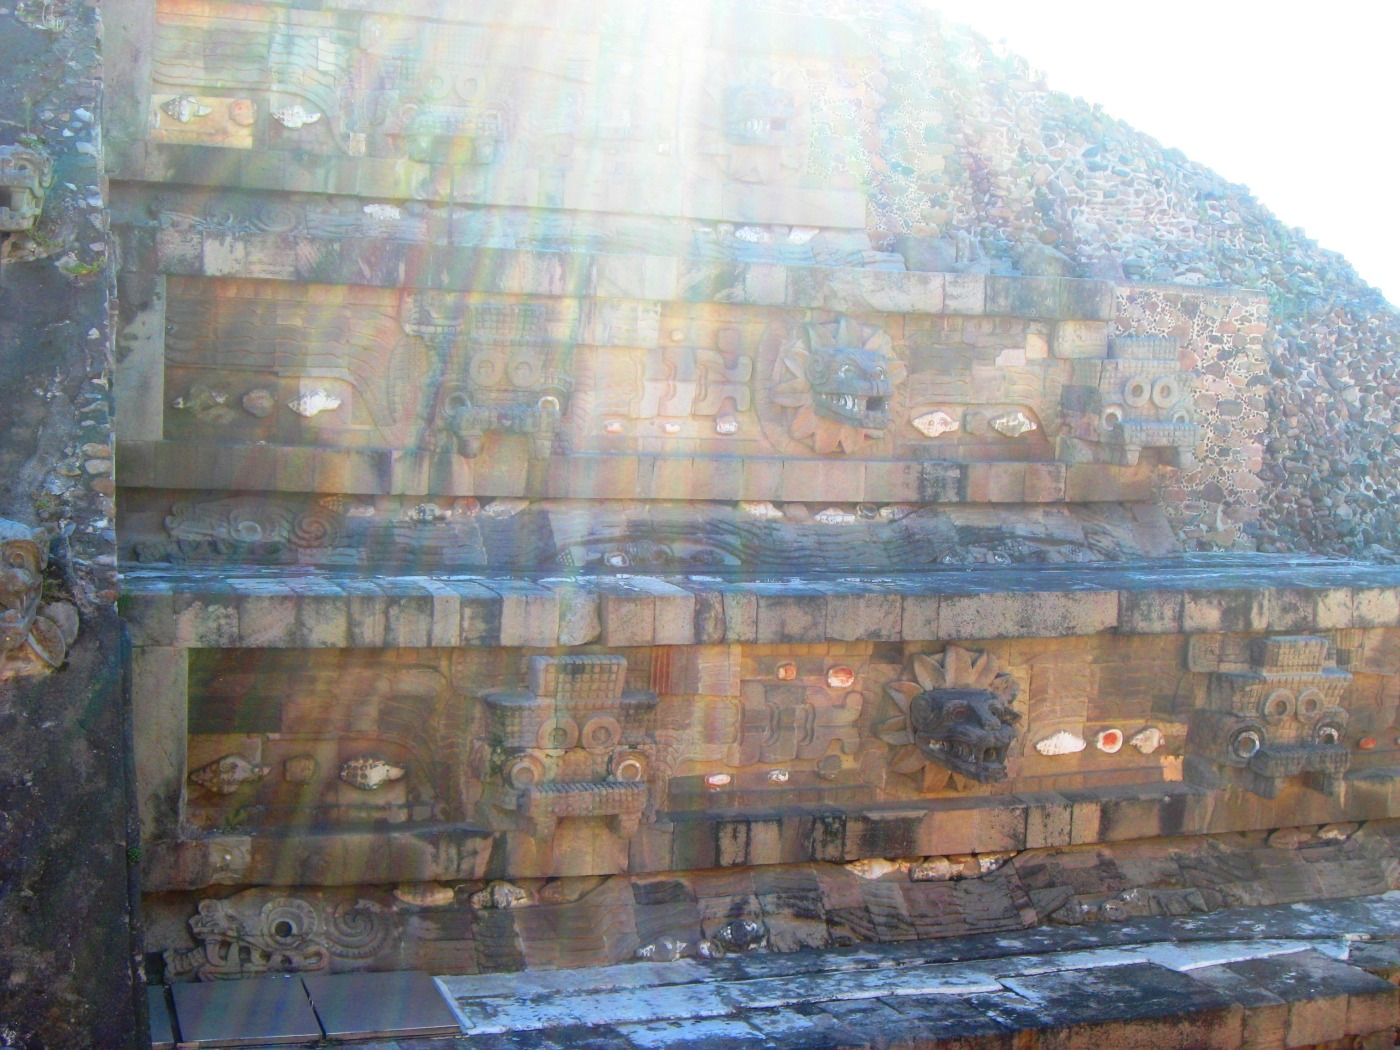 Sunshines over ancient pyramid symbols at Mexico Teotihuacan Ancient Illumination copyright